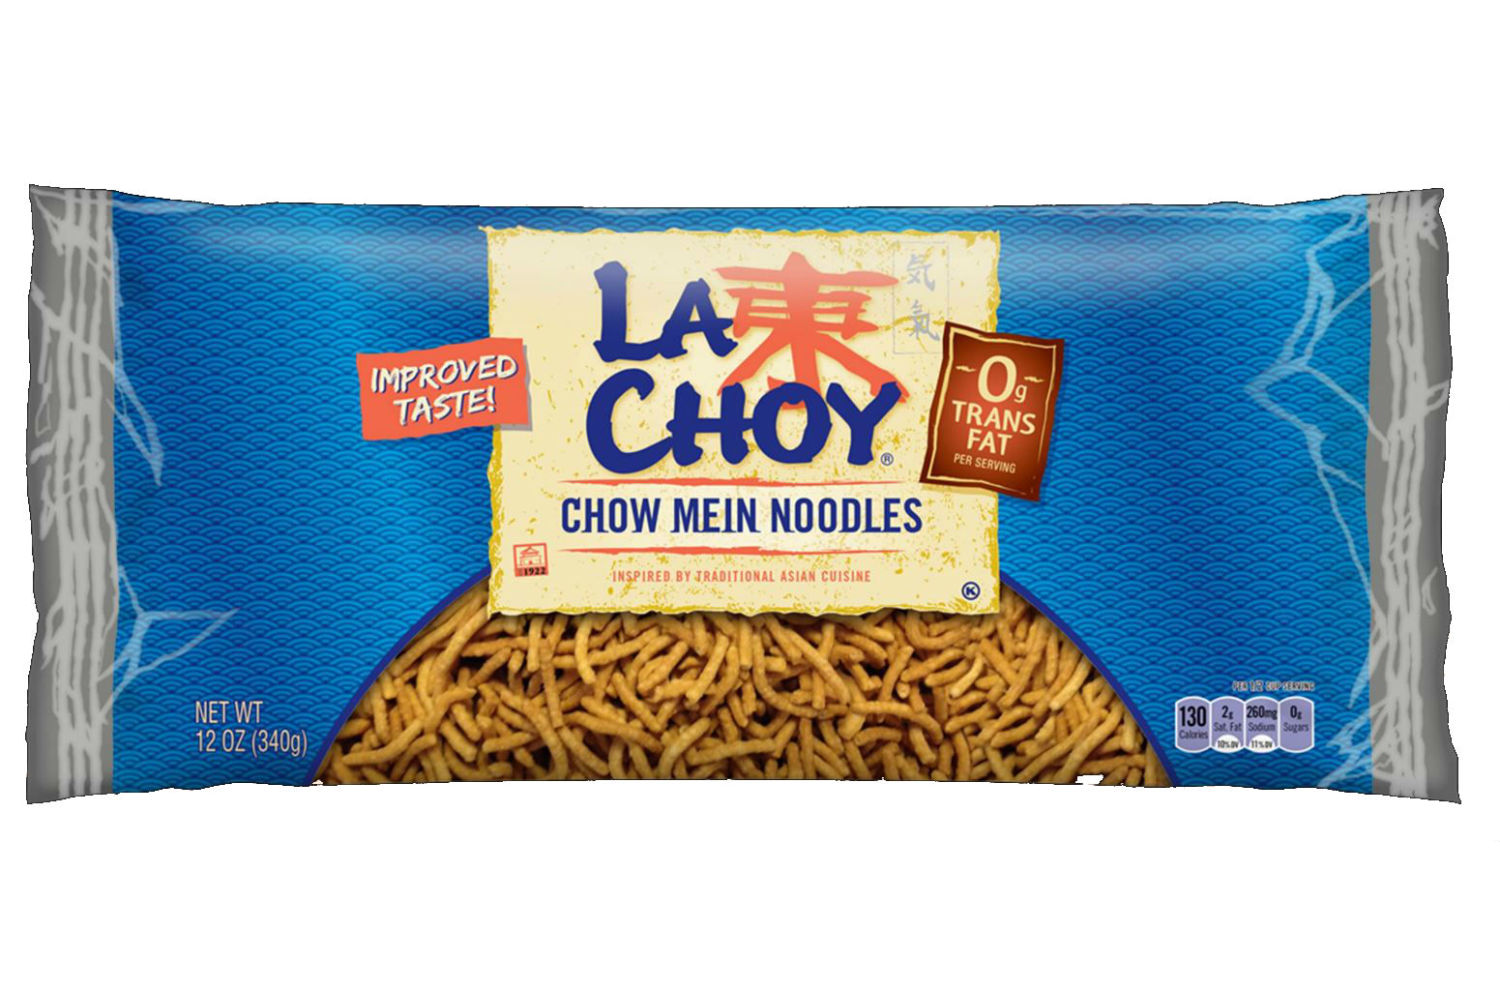 LA CHOY Chow Mein Noodles Bag Display Ready Case